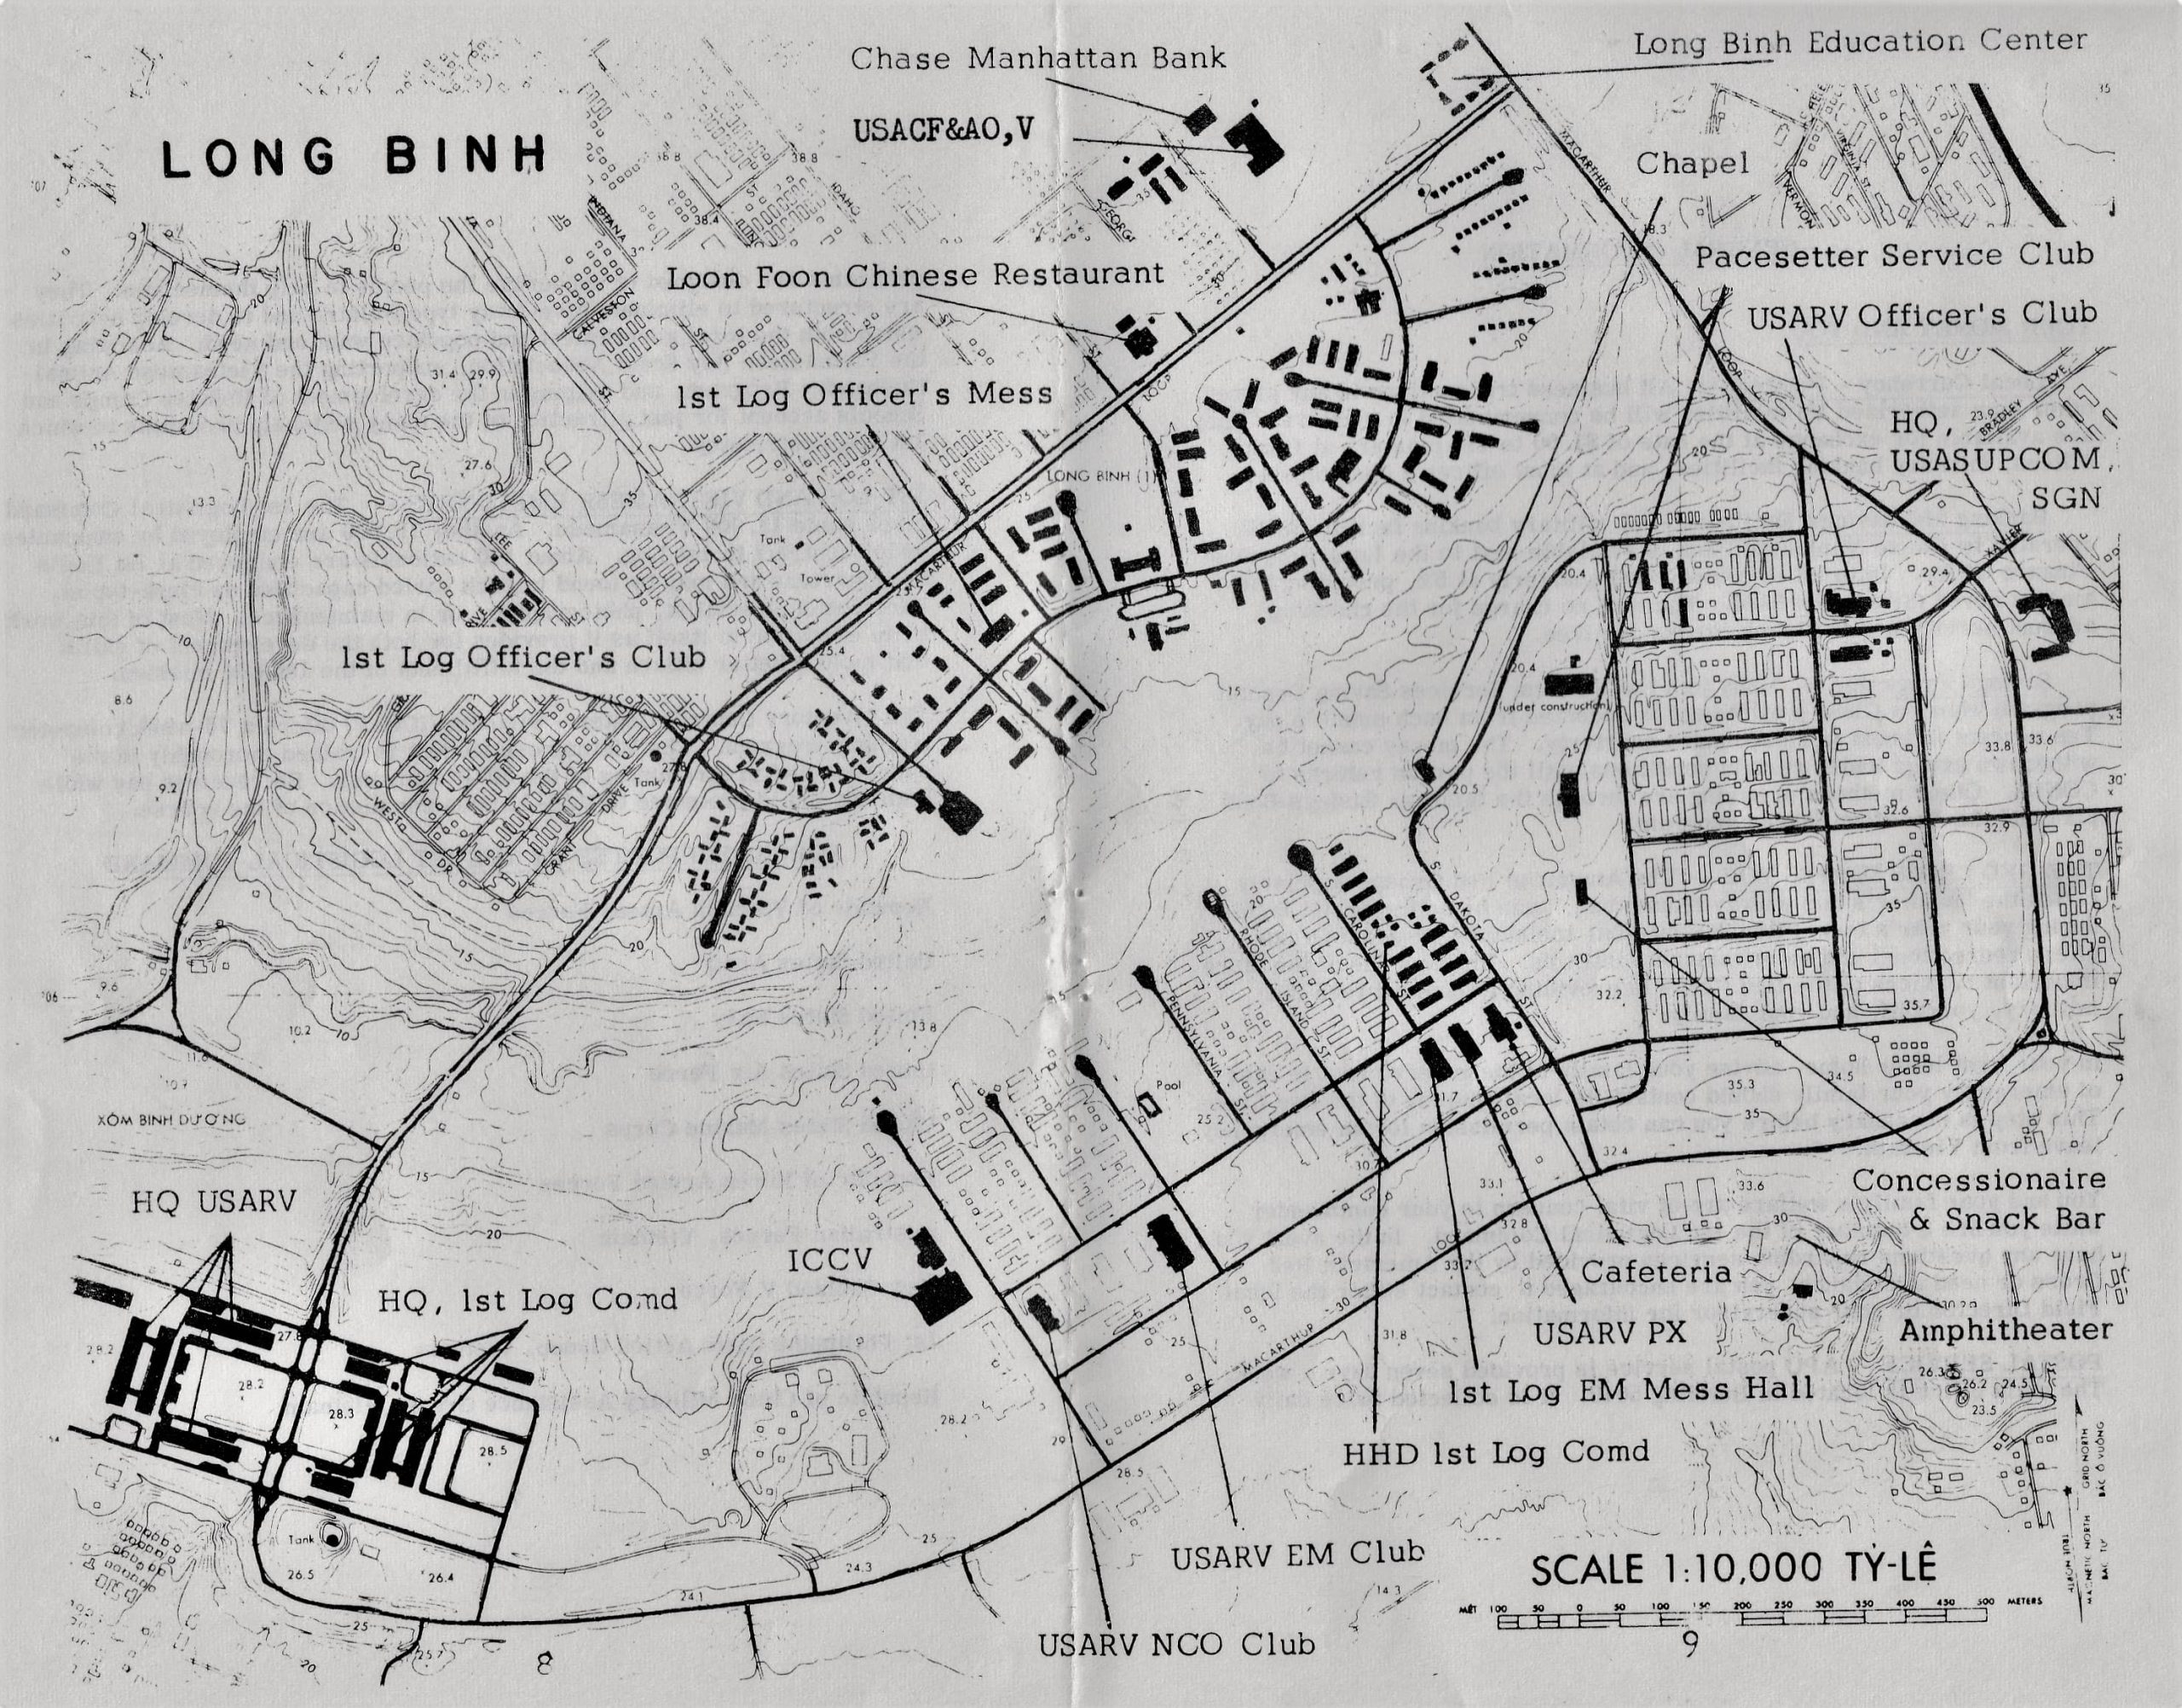 Map of buildings at Long Binh Army Base